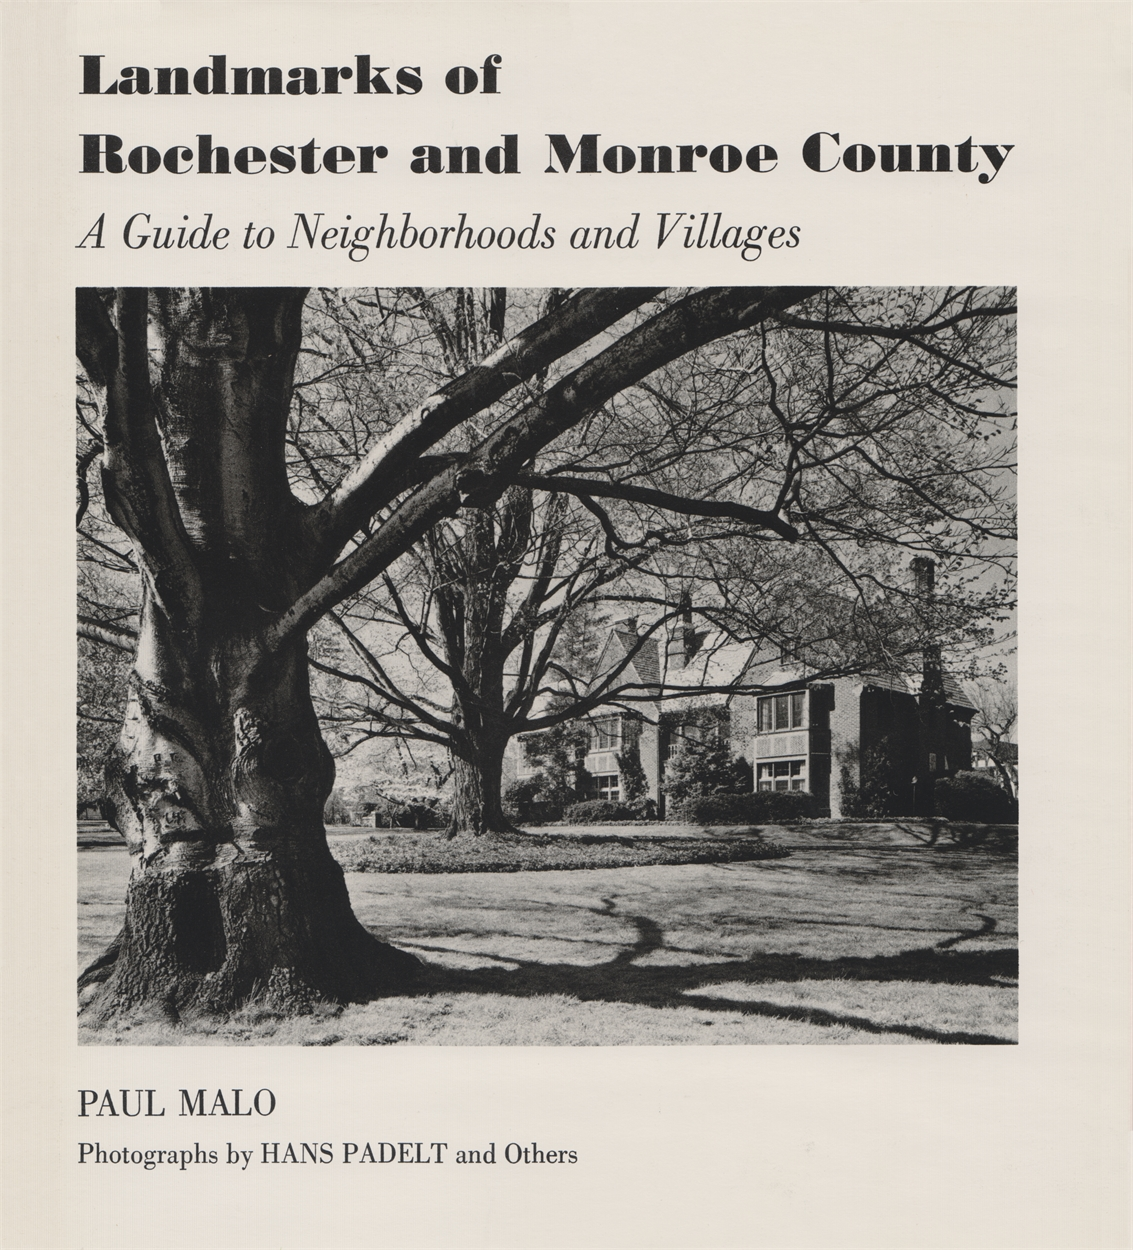 Landmarks of Rochester and Monroe County